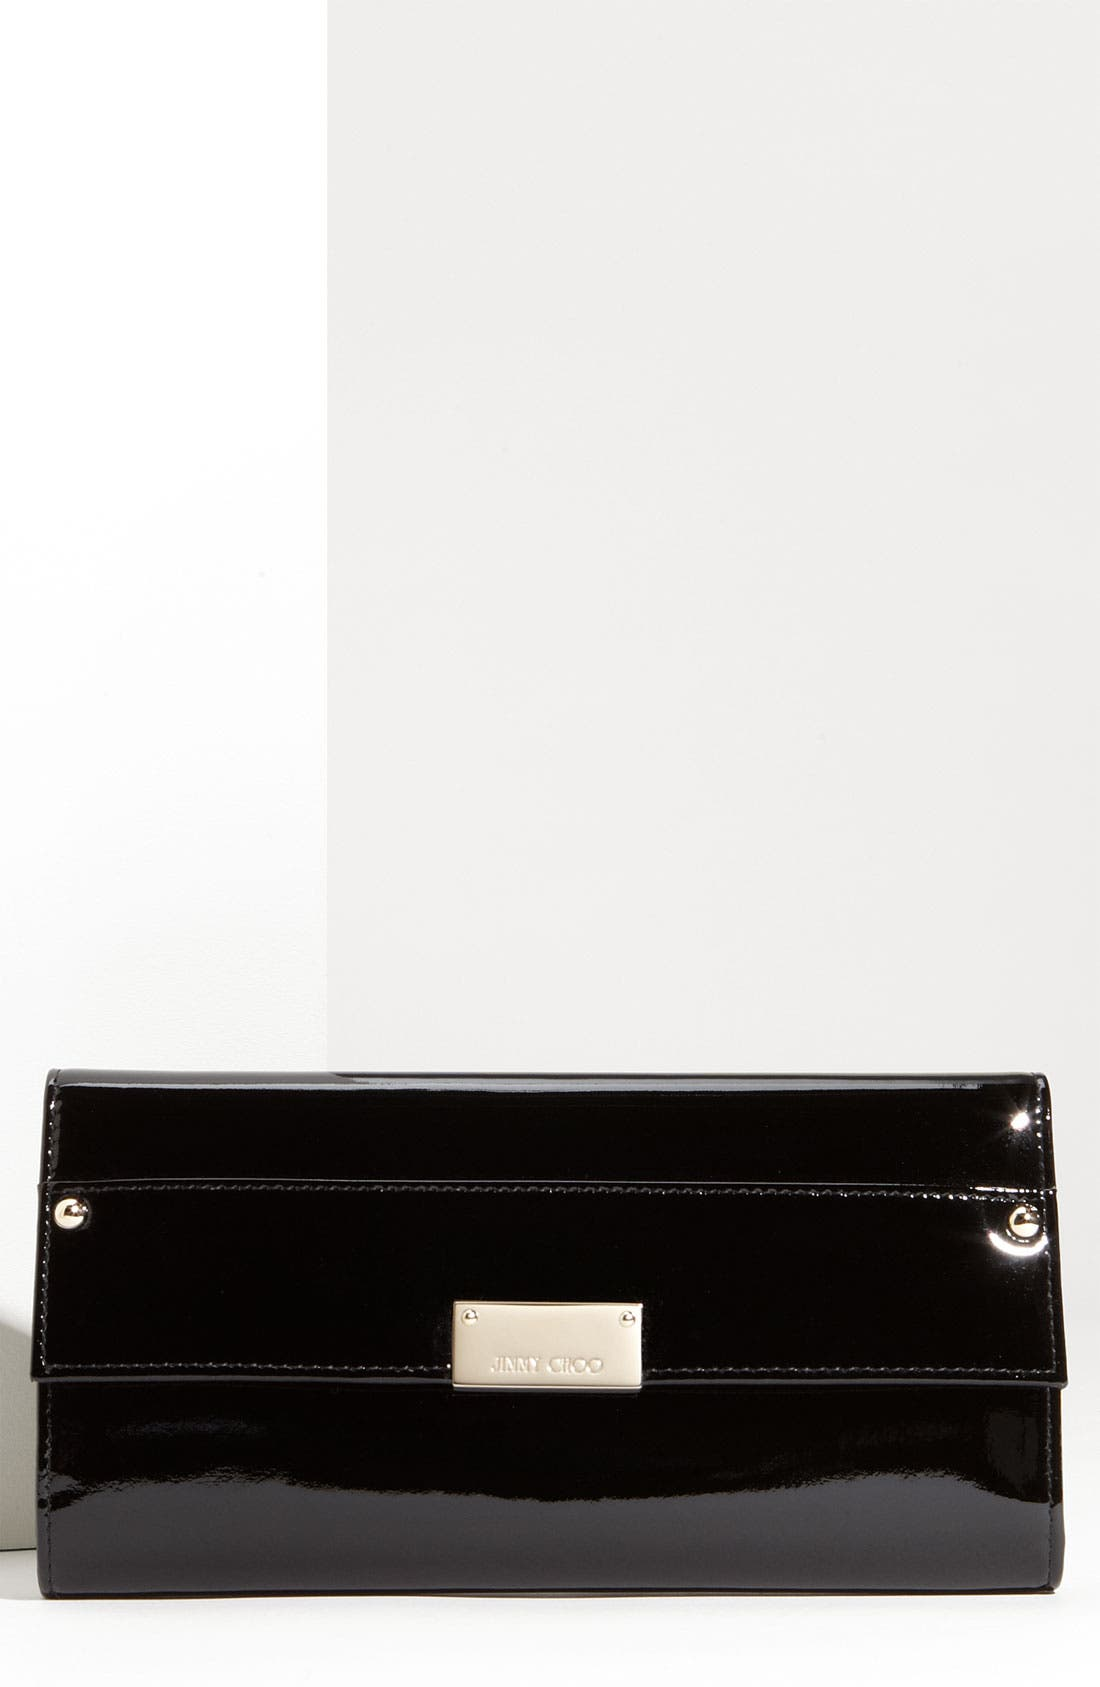 Main Image - Jimmy Choo 'Reese' Patent Leather Clutch